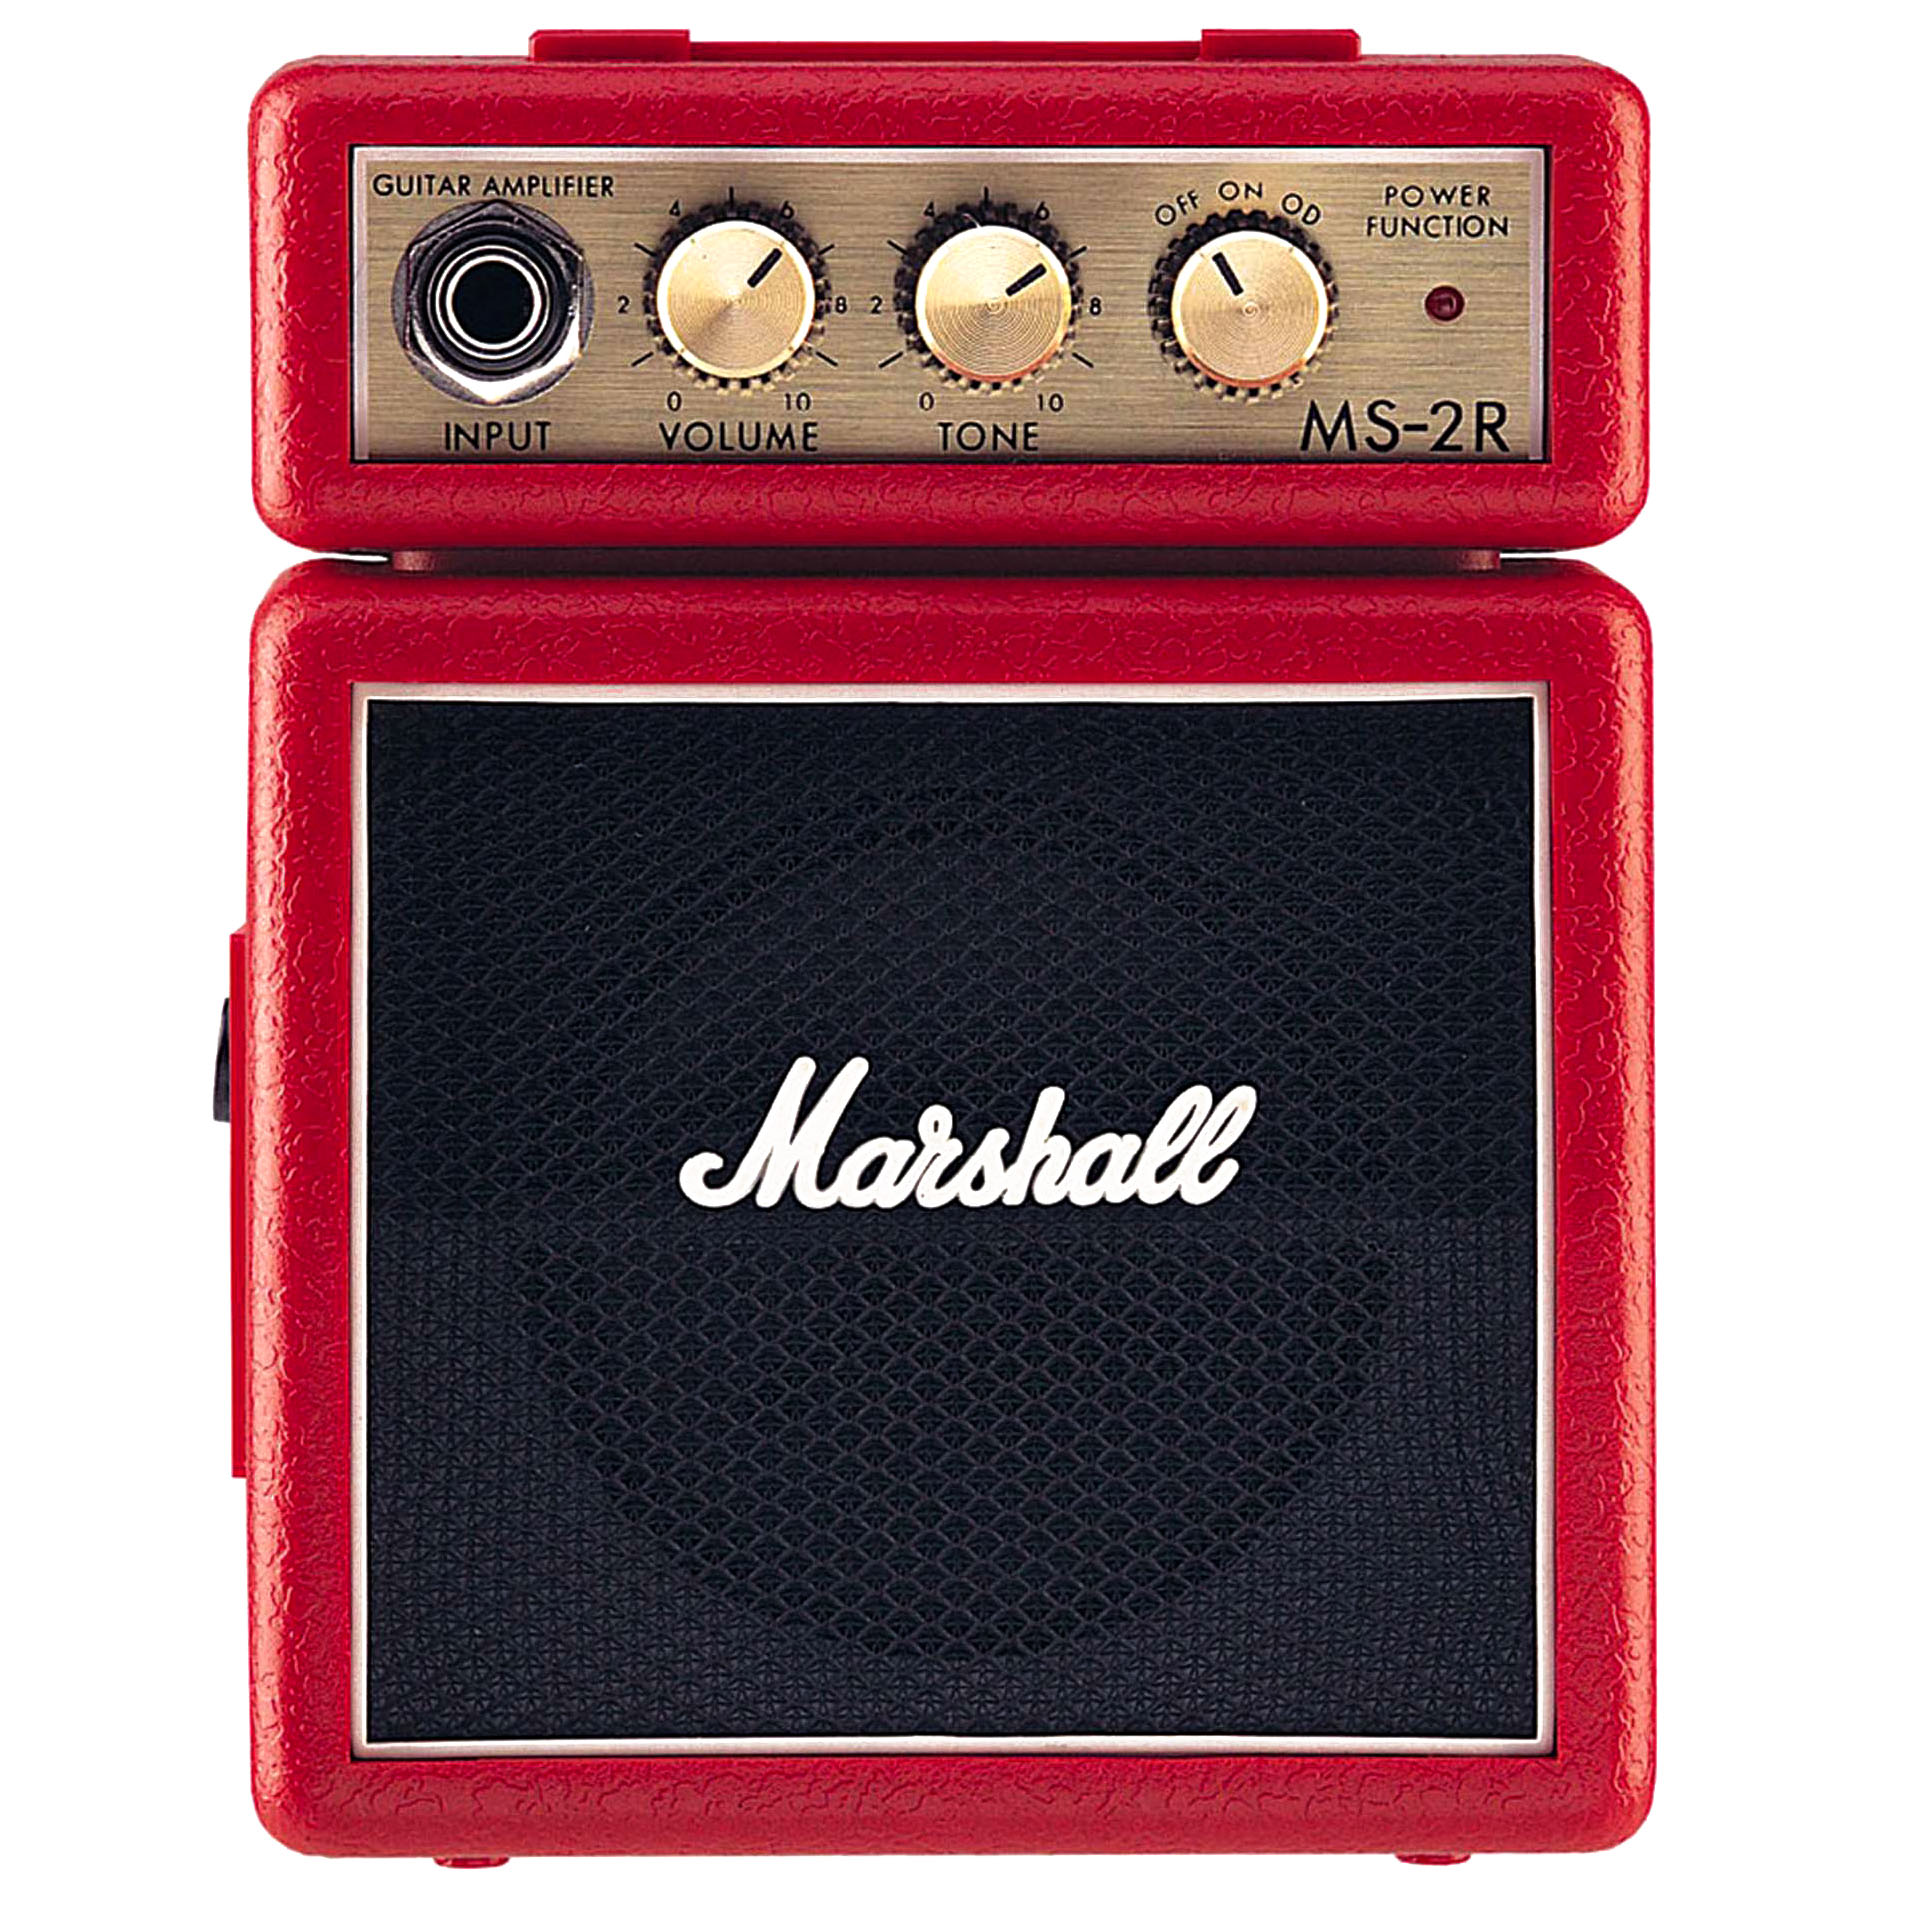 Marshall Ms-2r Micro Guitar Amplifier Red